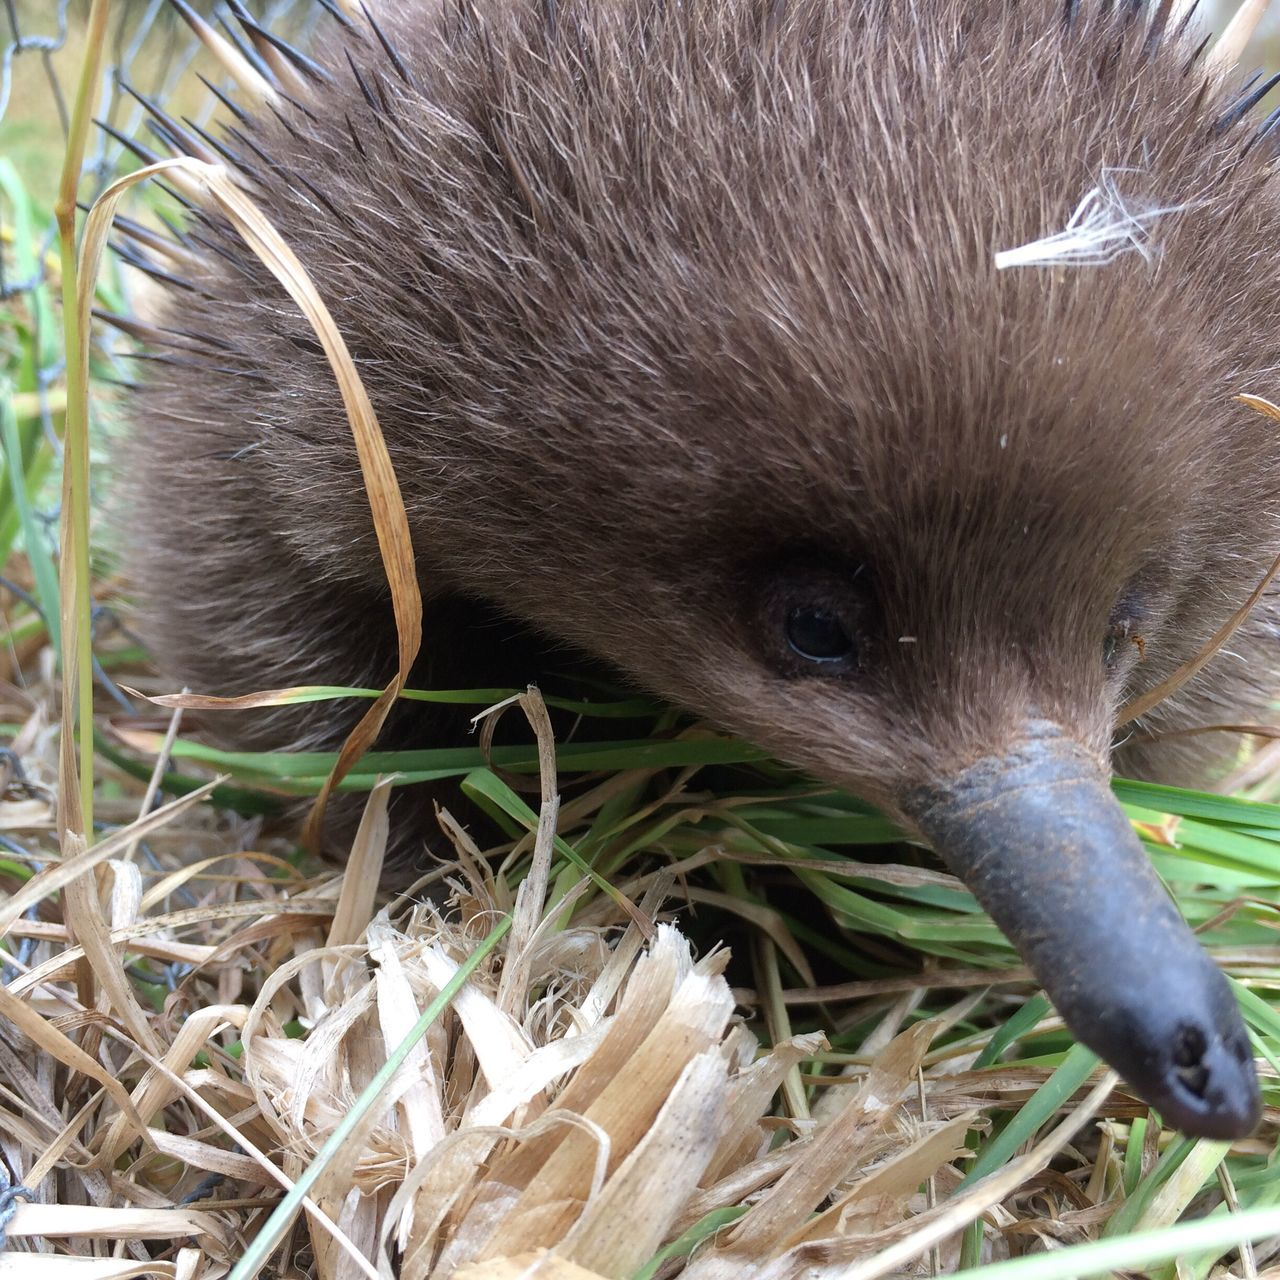 Echidna Native Wildlife Spiky Cute Snout Nature Animals In The Wild Close-up No People No Filter Outdoors Tasmania Beautiful Photography EyeEm Still Life EyeEm Best Shots Focus